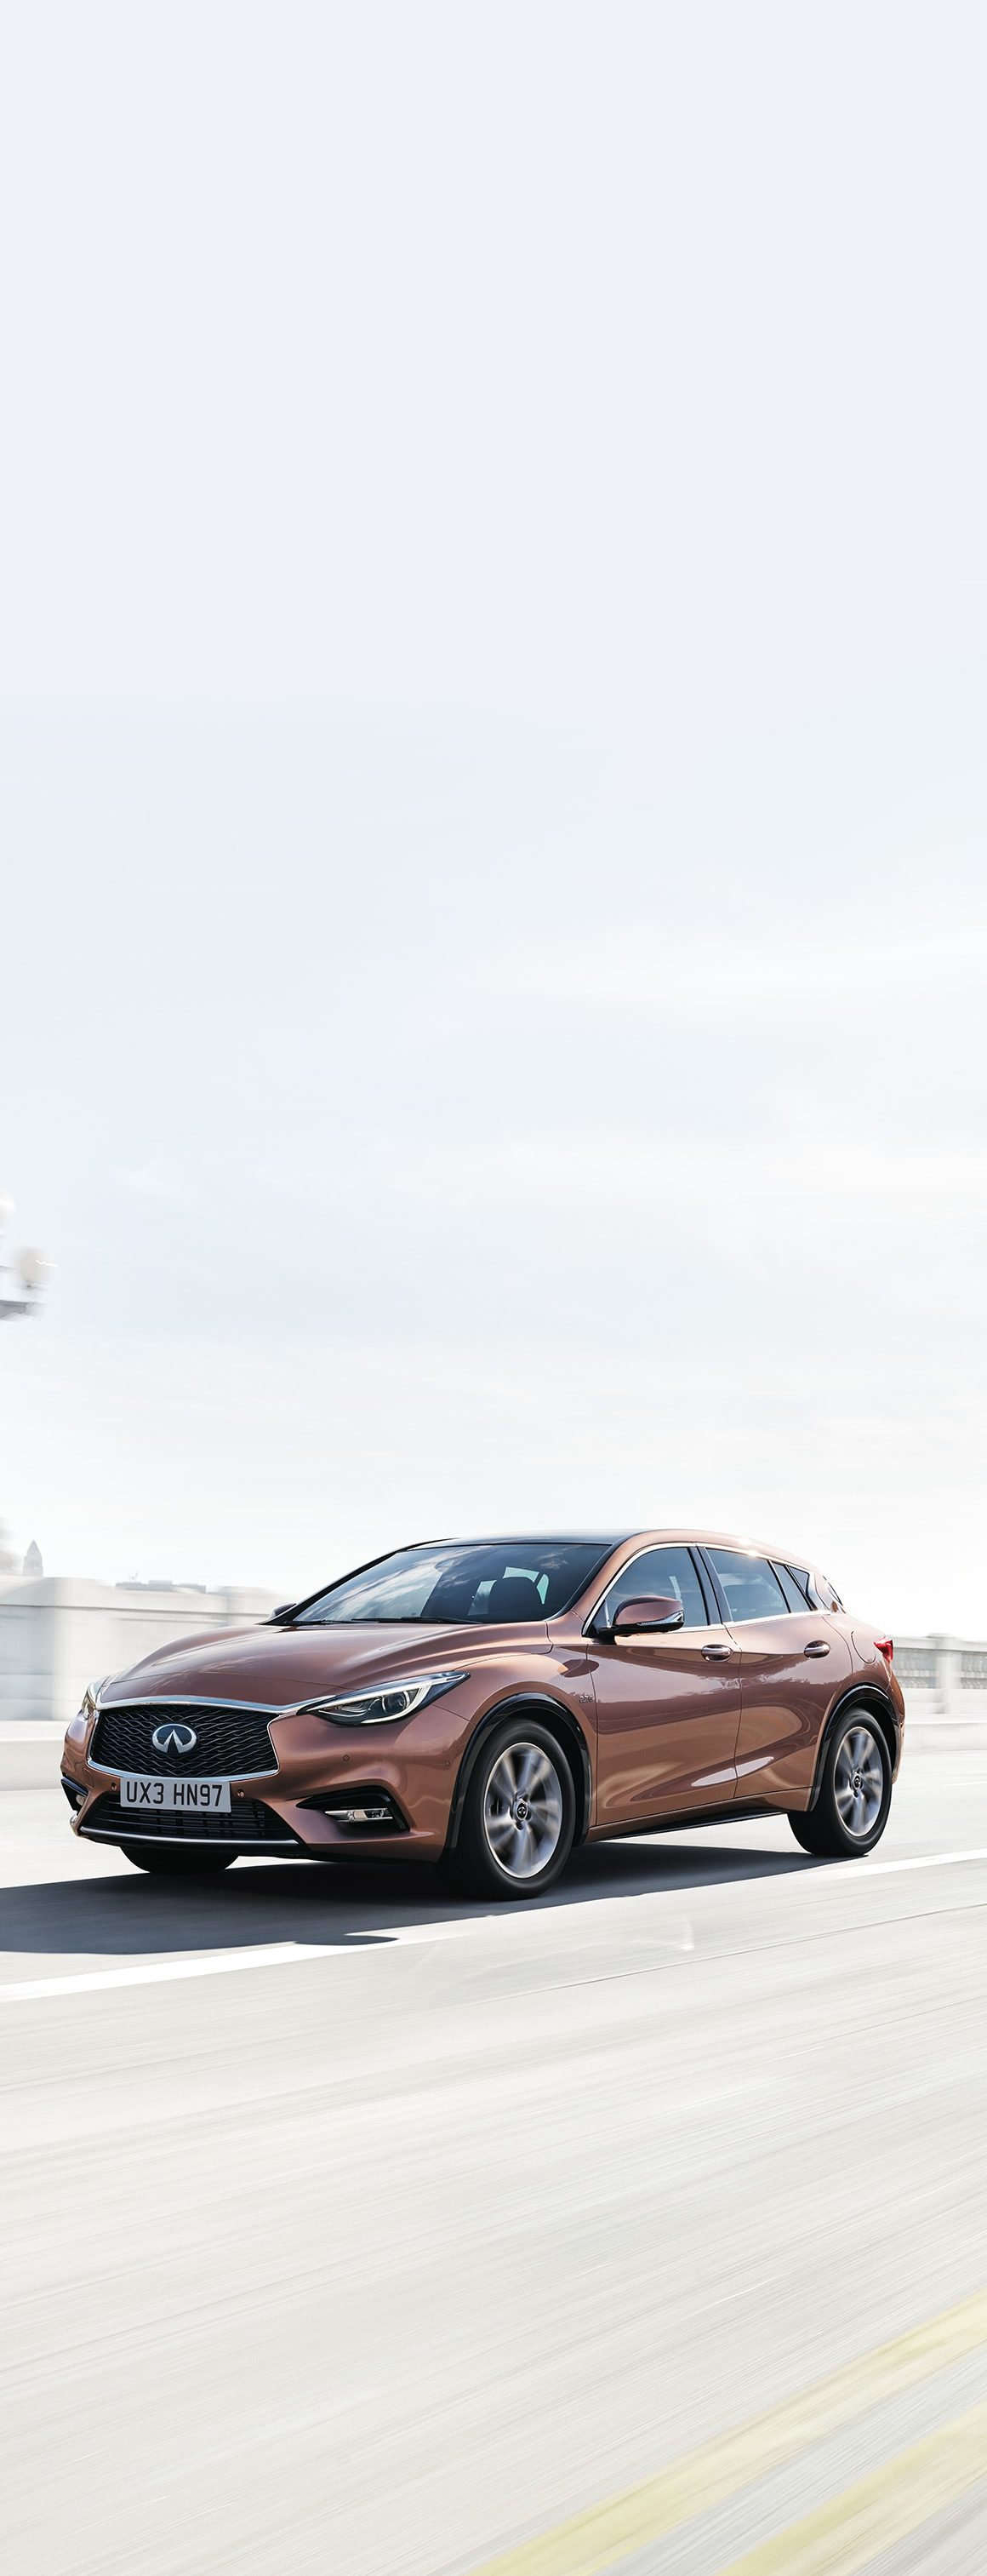 The Infiniti Q30 has arrived to shatter convention.